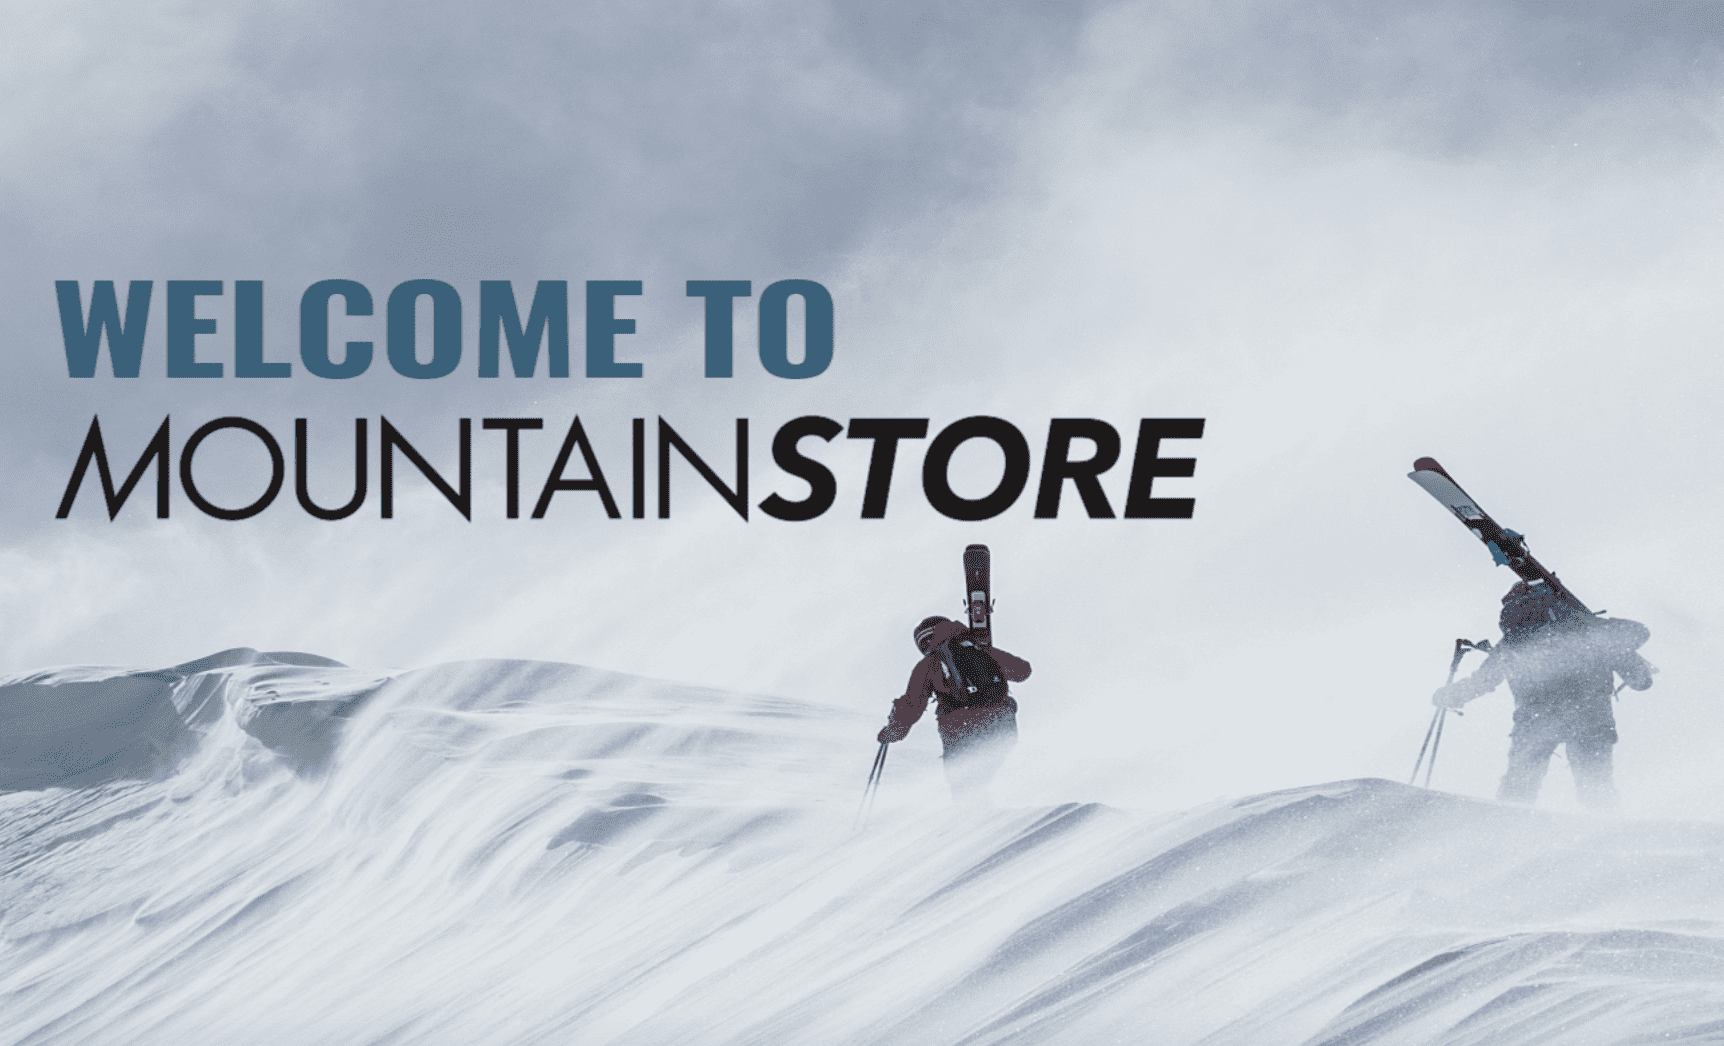 Shop the New MountainStore - Christmas Sale Up To 25% Off